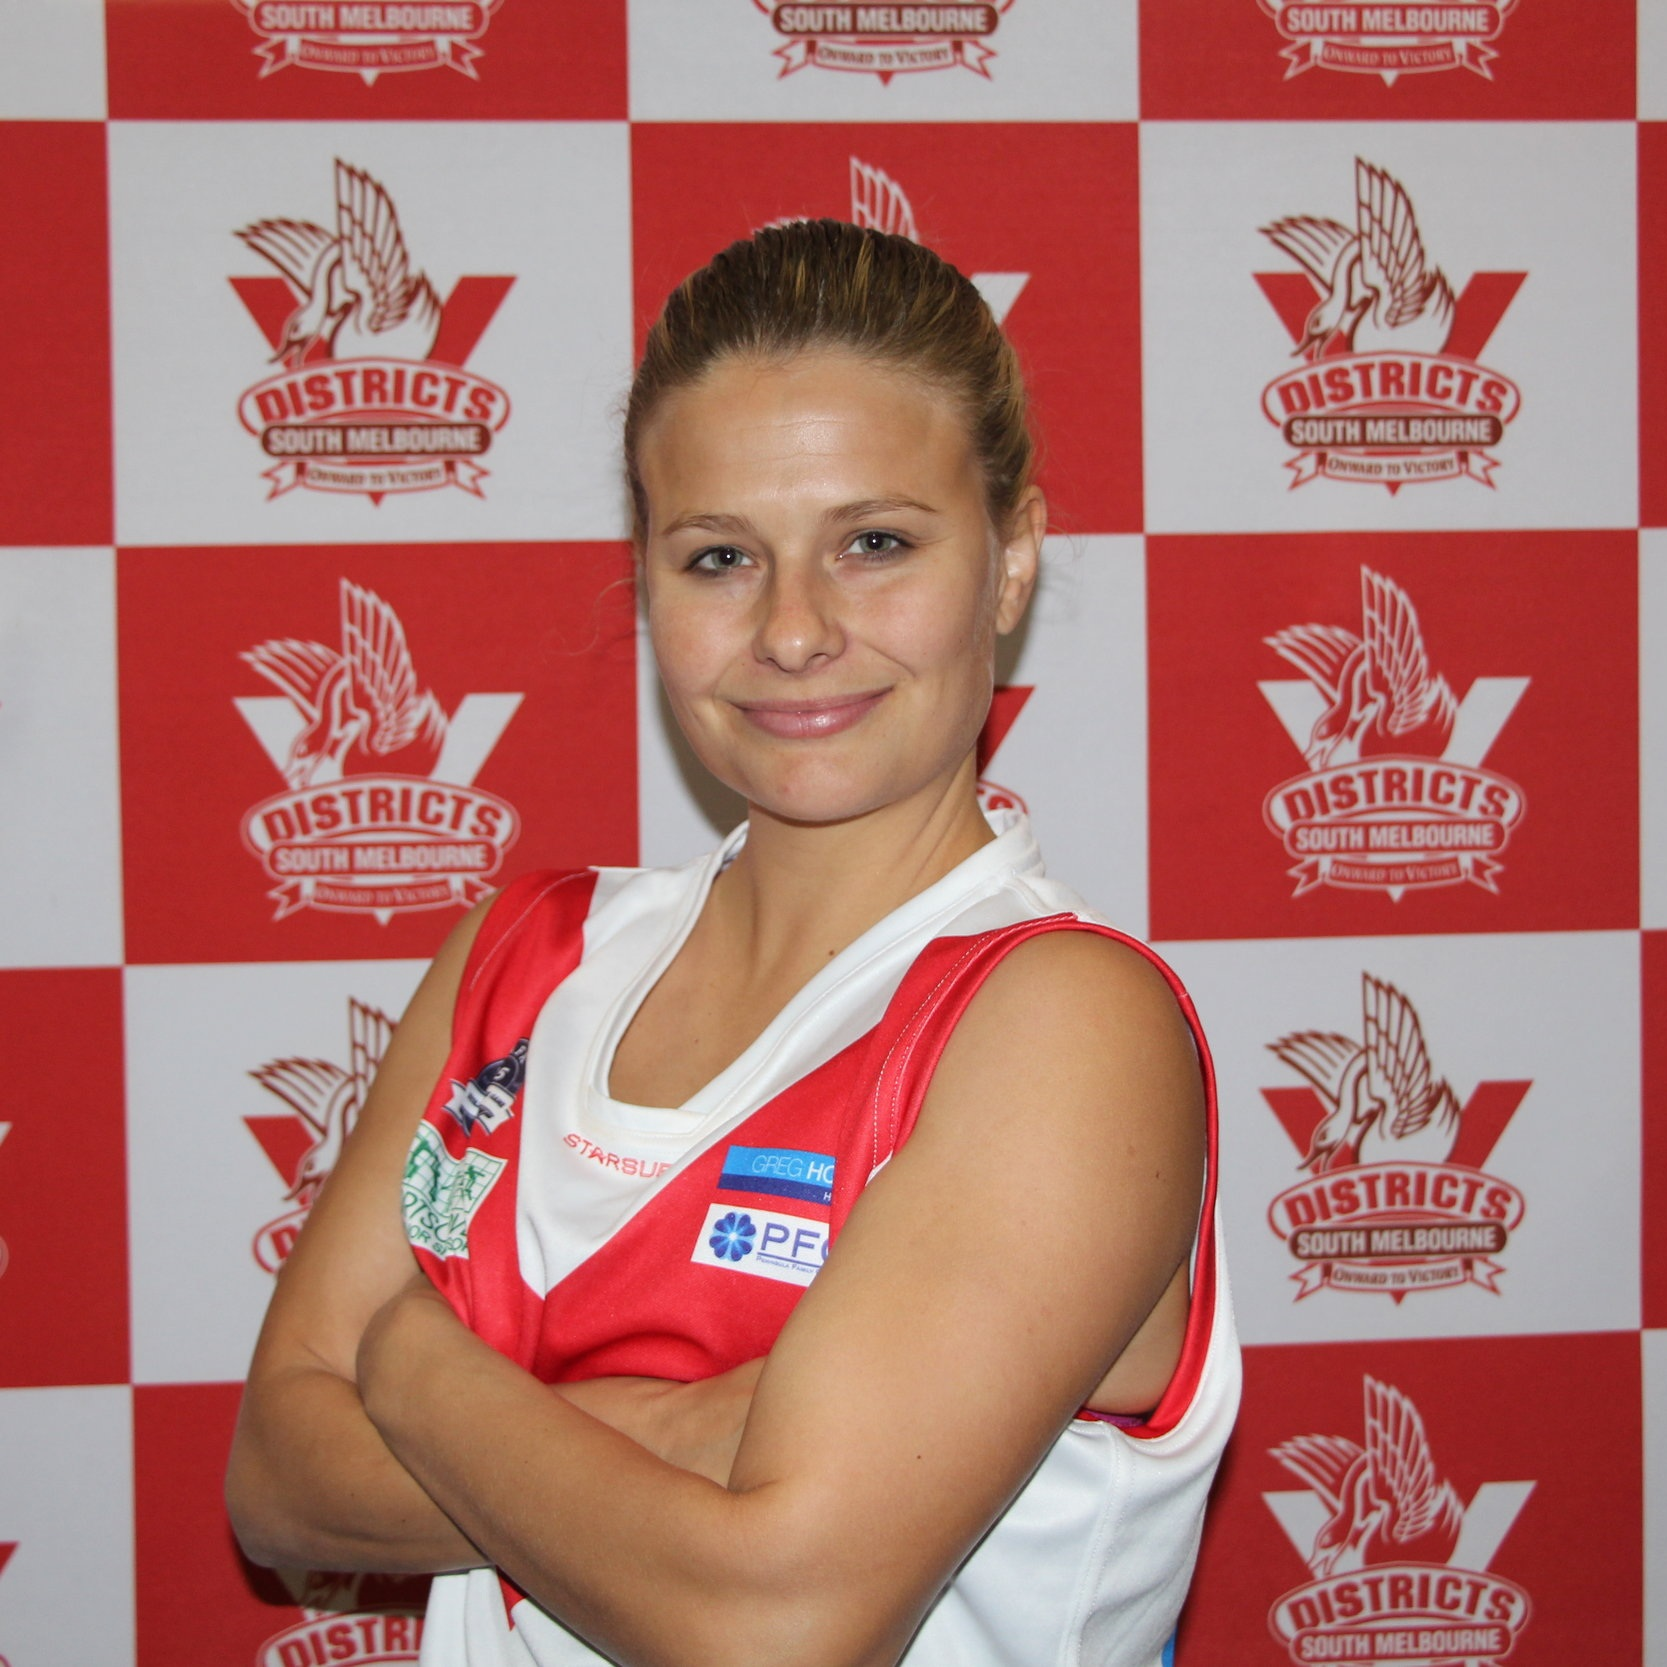 Tara  Tara is a one of the remaining 2017 players that bring sound footy skills and knowledge to the ground each week. She plays a physical, defensive game wherever she ends up on the ground and wears the #38 jumper with pride. Like many Bloods players Tara comes to us from another sport- American football! Not your average Victorian sport but we are pleased to have Tara as she changed over after a broken ankle. Off the field you'll find Tara drinking good wine, eating great steak and attempting to not fall through roofs (ask her!)!